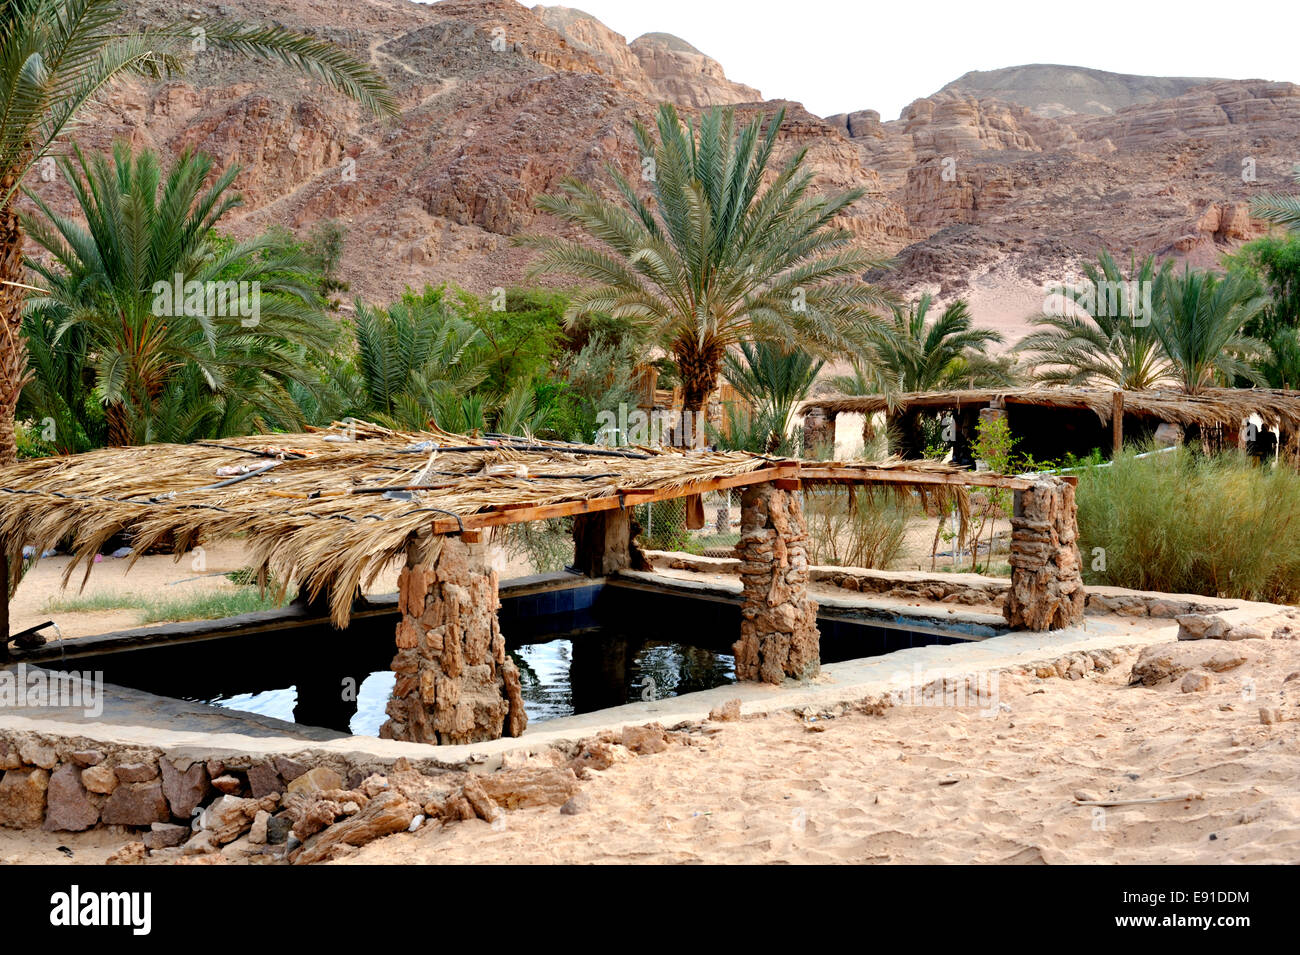 Water storage tanks at Ain Hudra (or Ayun Khodra) Oasis in south Sinai desert a Bedouin camp, Egypt - Stock Image